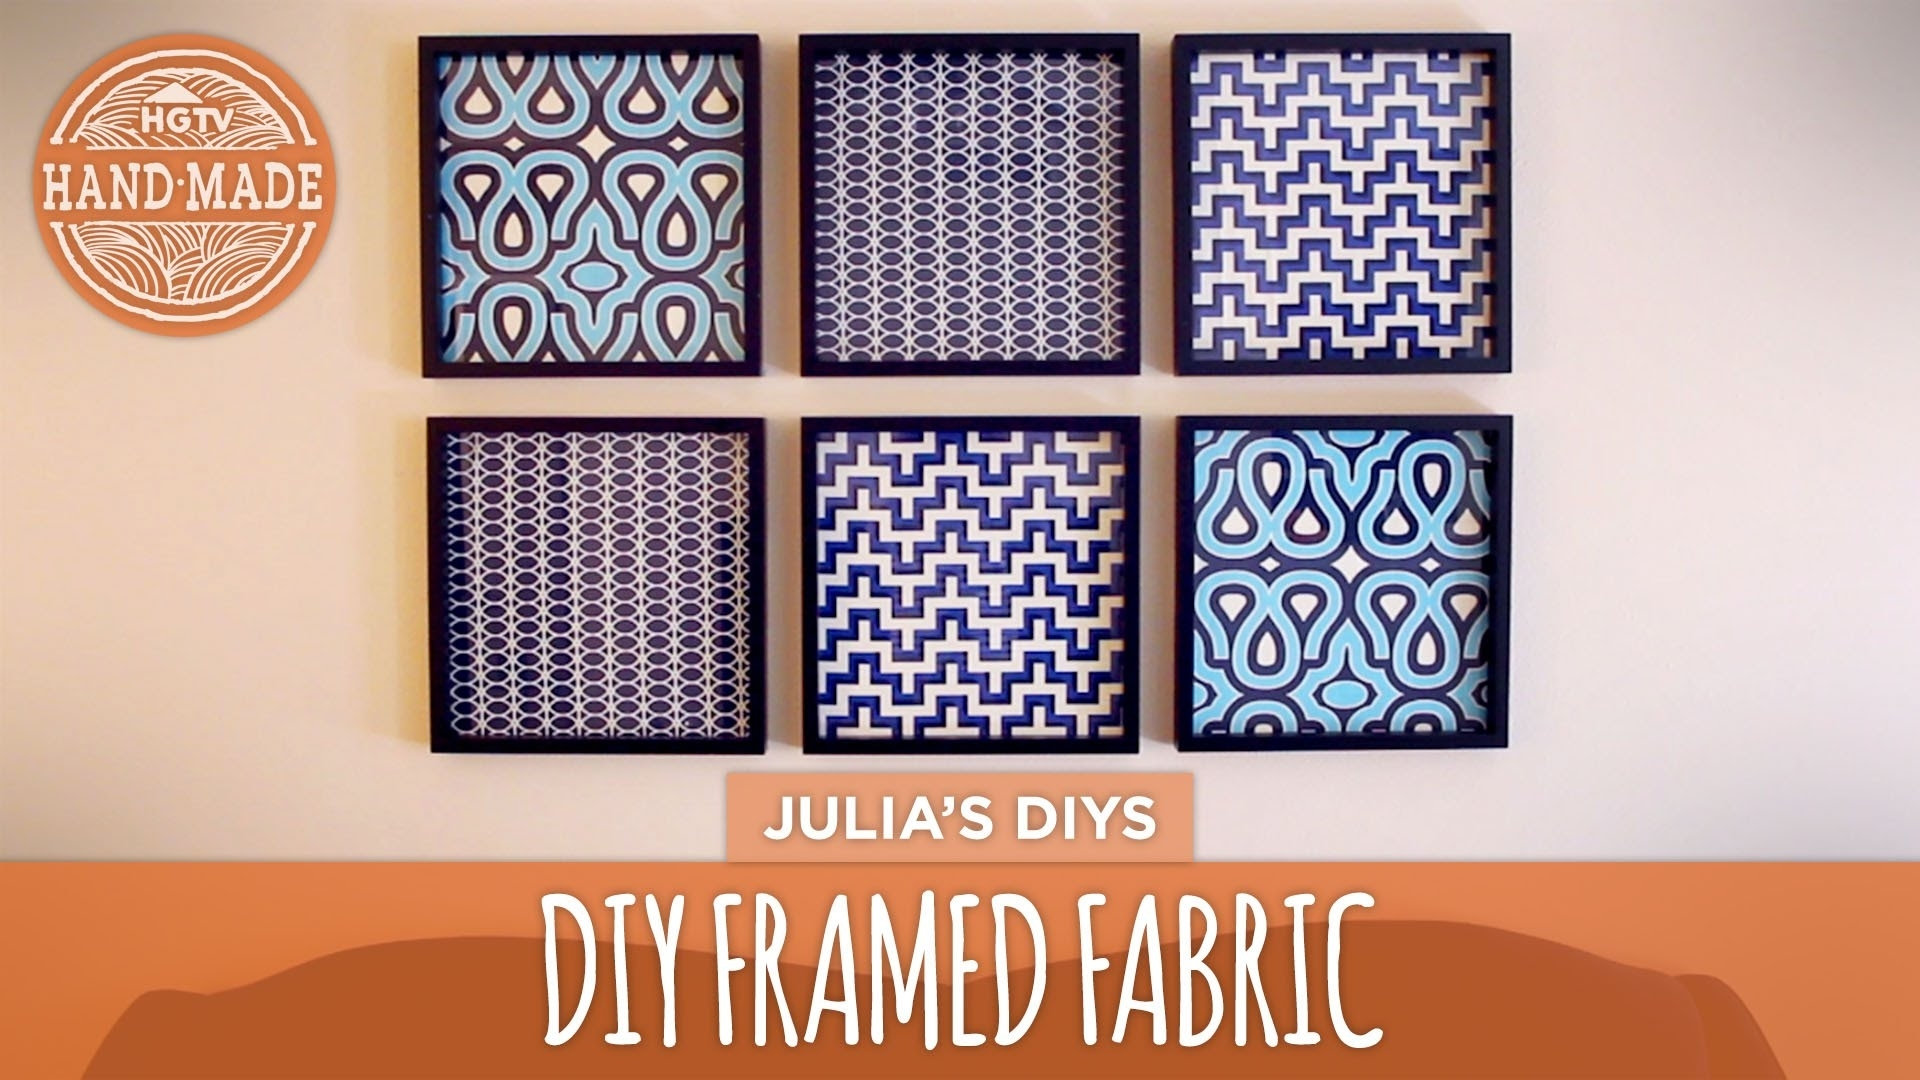 Diy Fabric Wall Art Panels Do It Your Self – Super Tech Inside Most Recent Diy Fabric Wall Art Panels (Gallery 12 of 15)